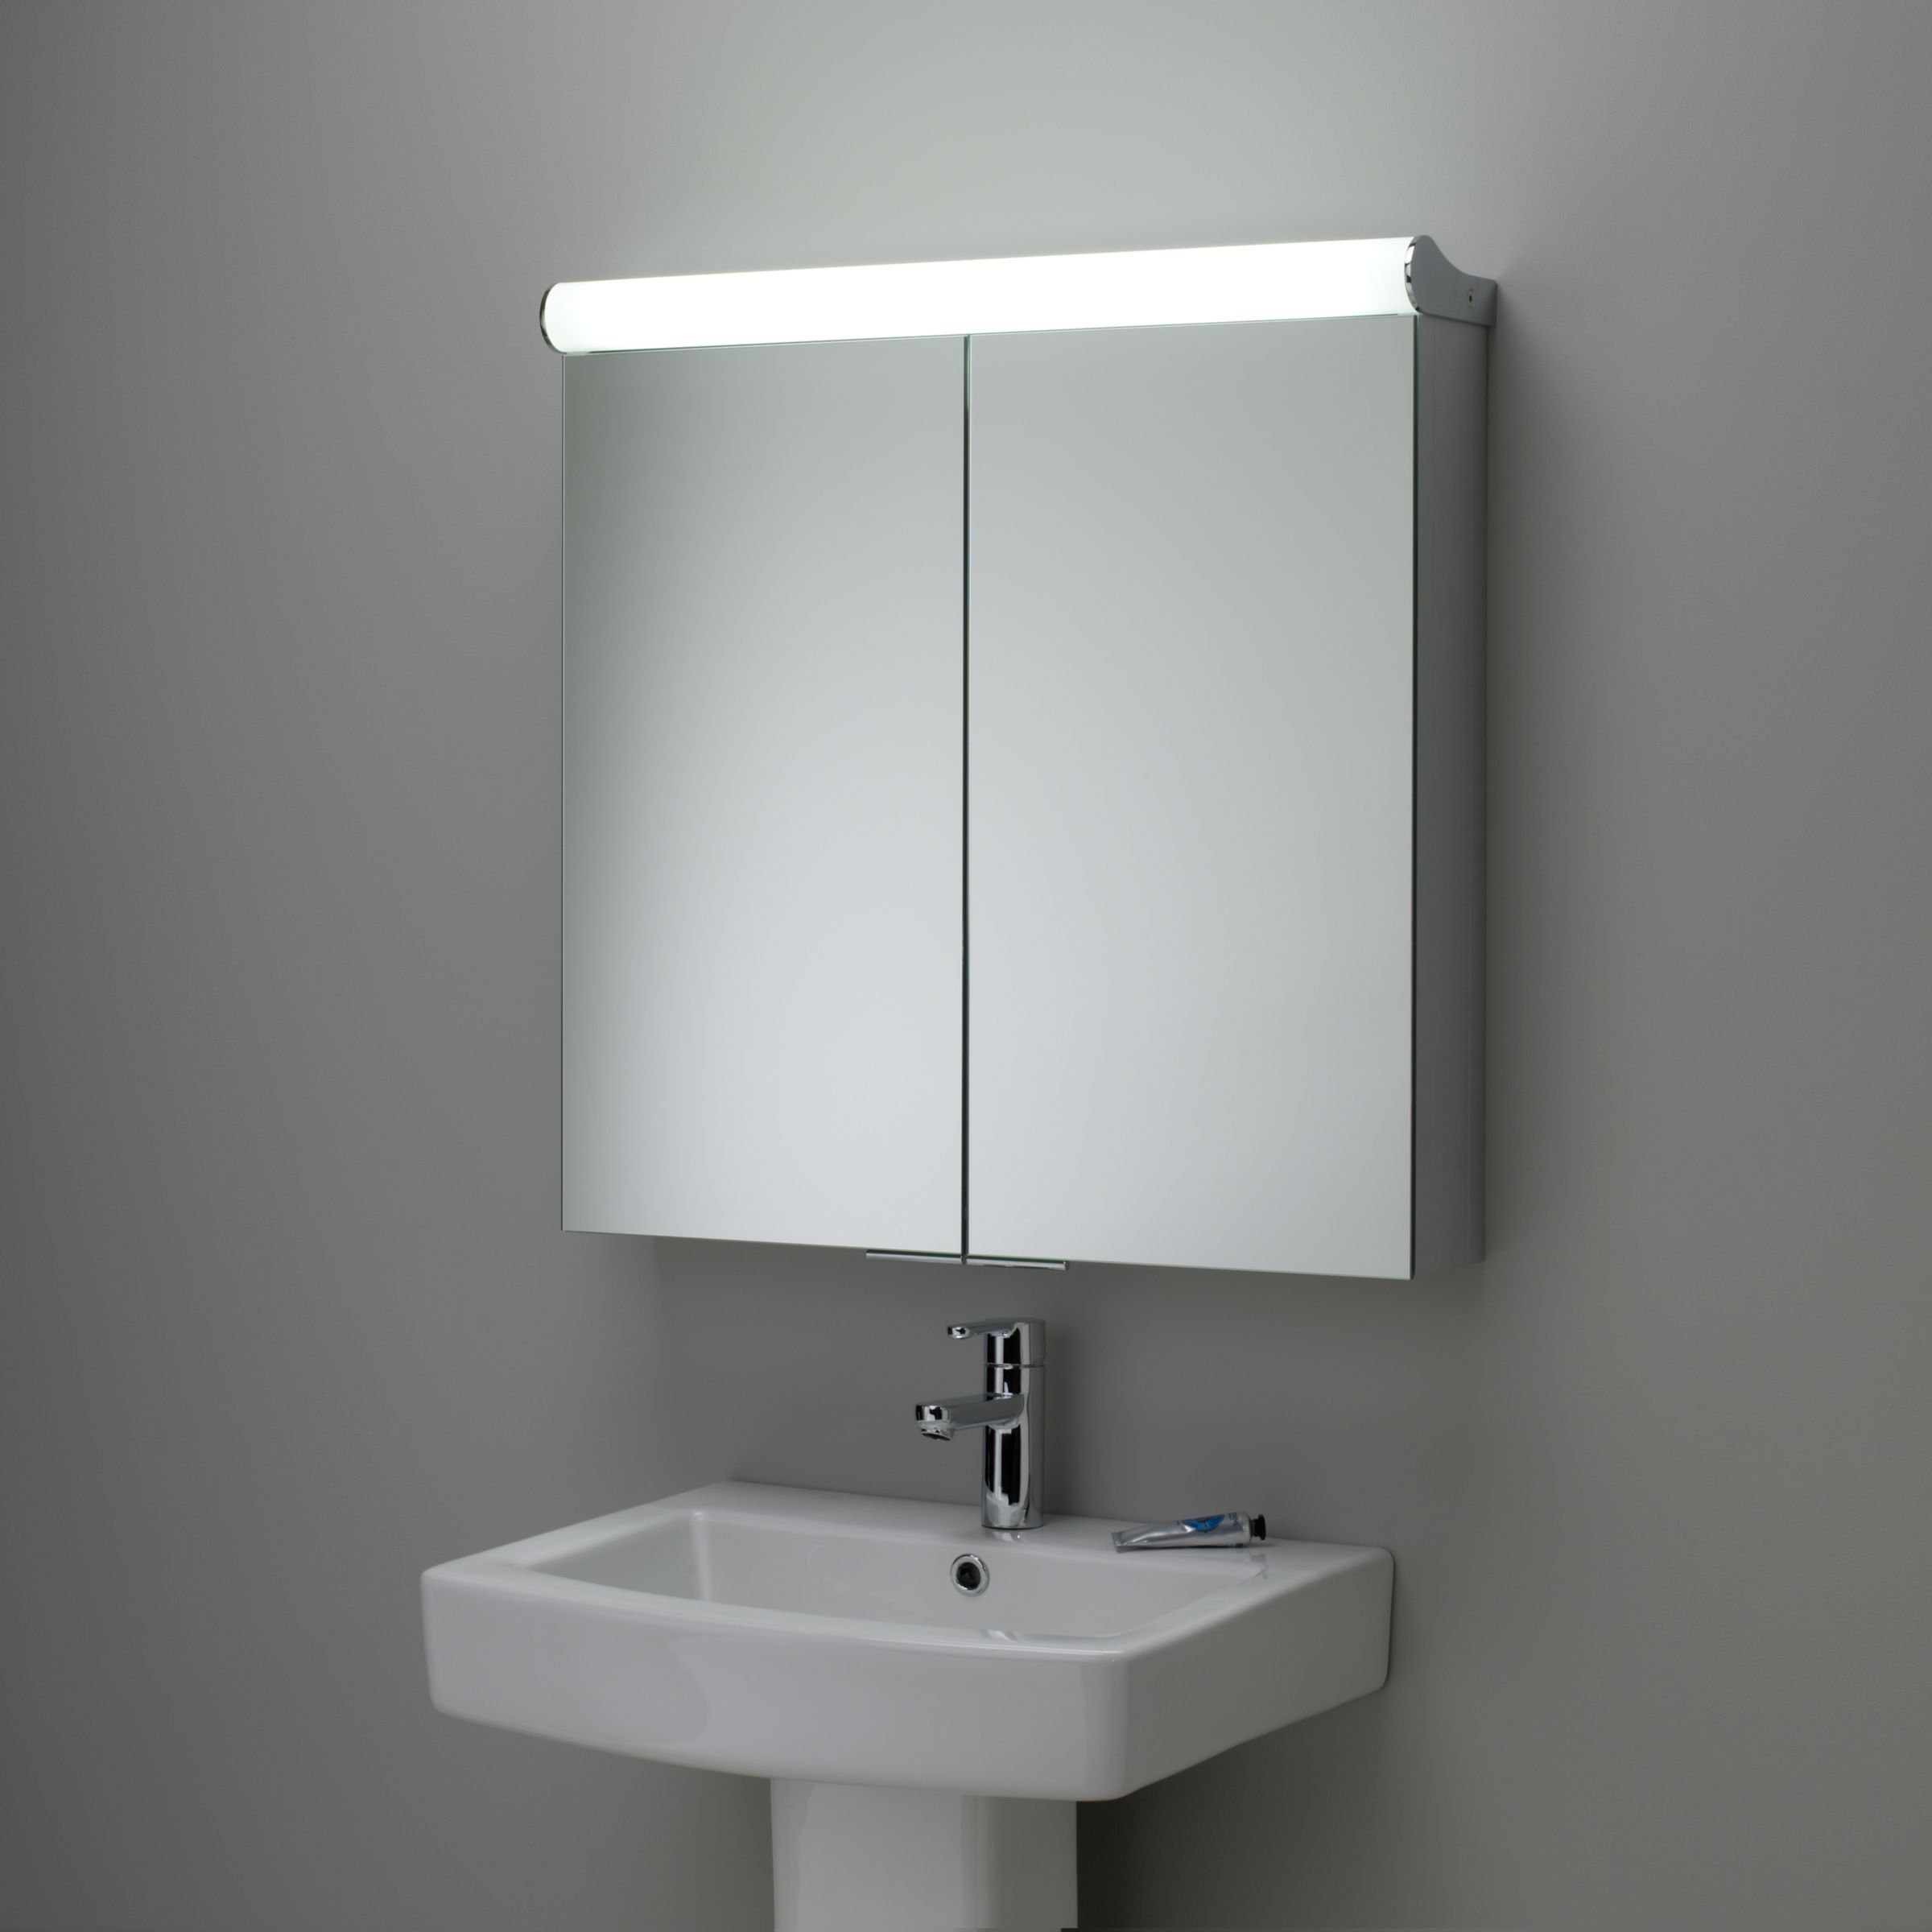 Roper Rhodes Roper Rhodes Latitude Illuminated Double Bathroom Cabinet with Double-Sided Mirror